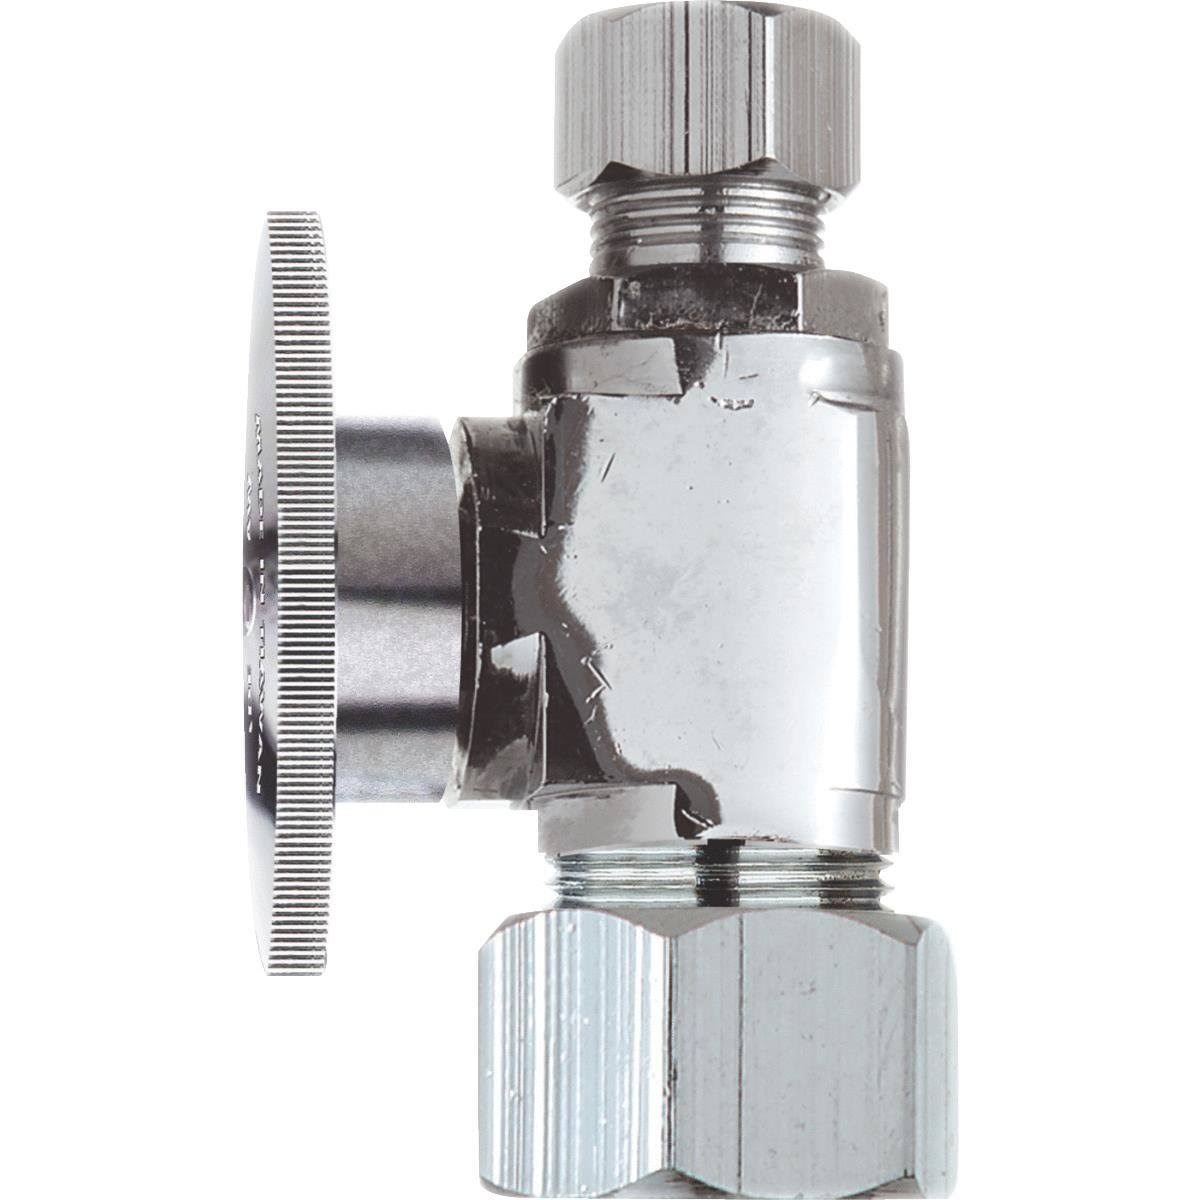 Plumb Pak 456296 Do It Quarter Turn Straight Valve - 3pk